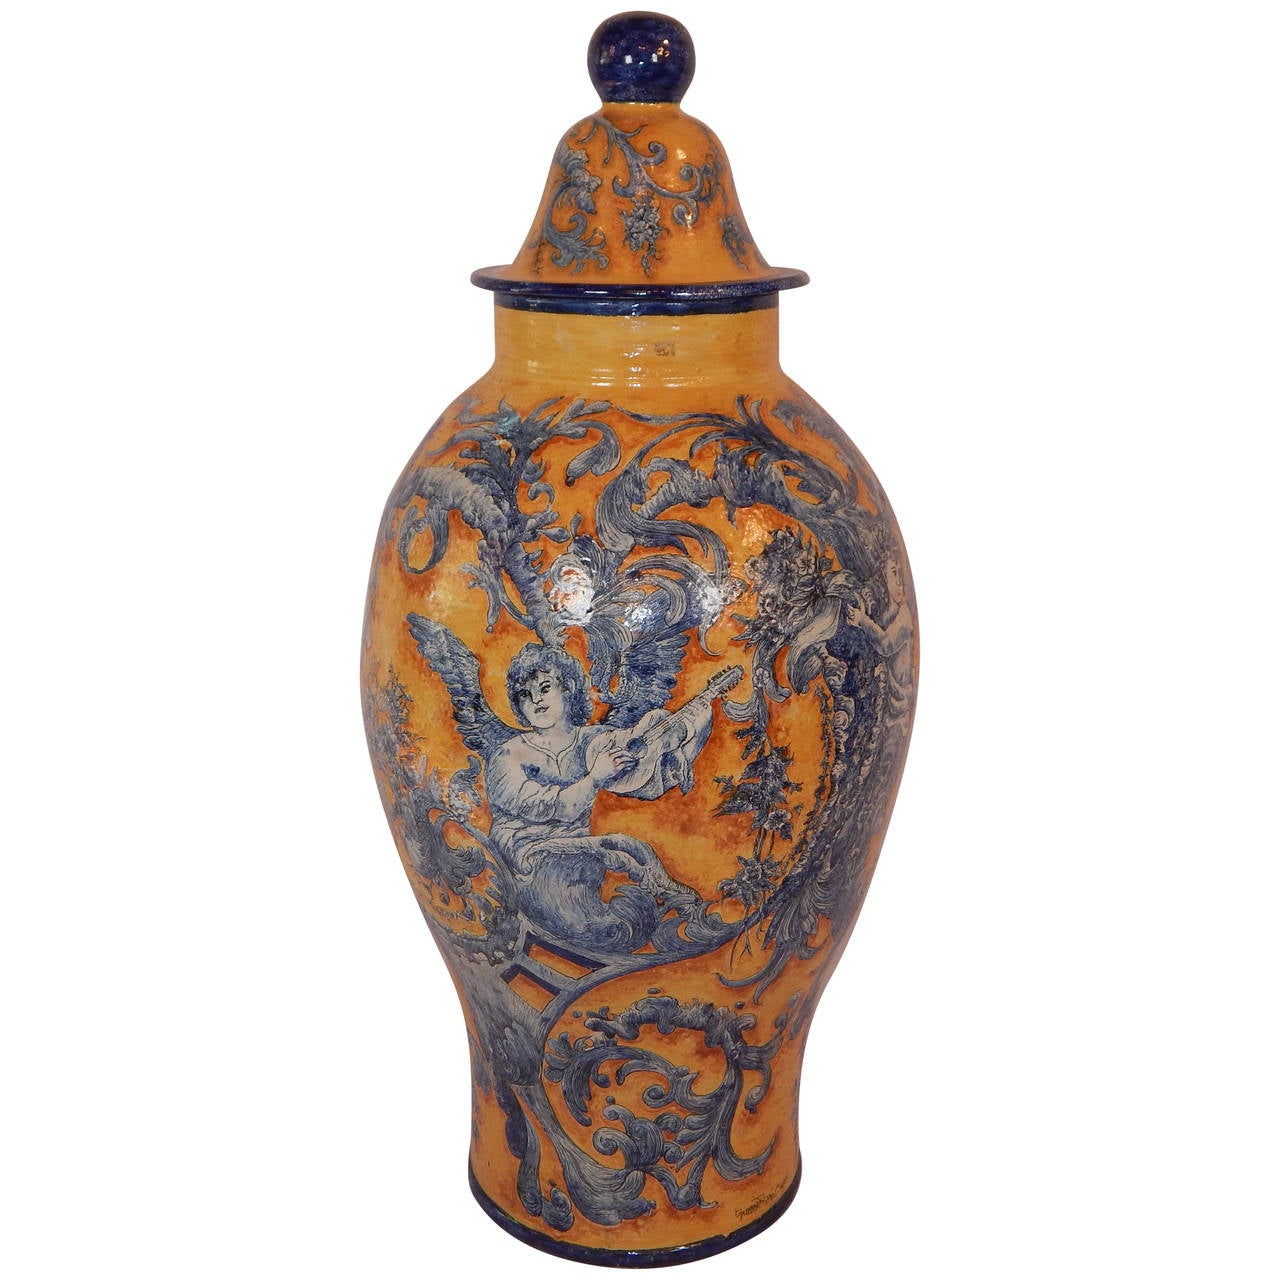 paint decorated faience covered floor vase signed for sale at 1stdibs. Black Bedroom Furniture Sets. Home Design Ideas